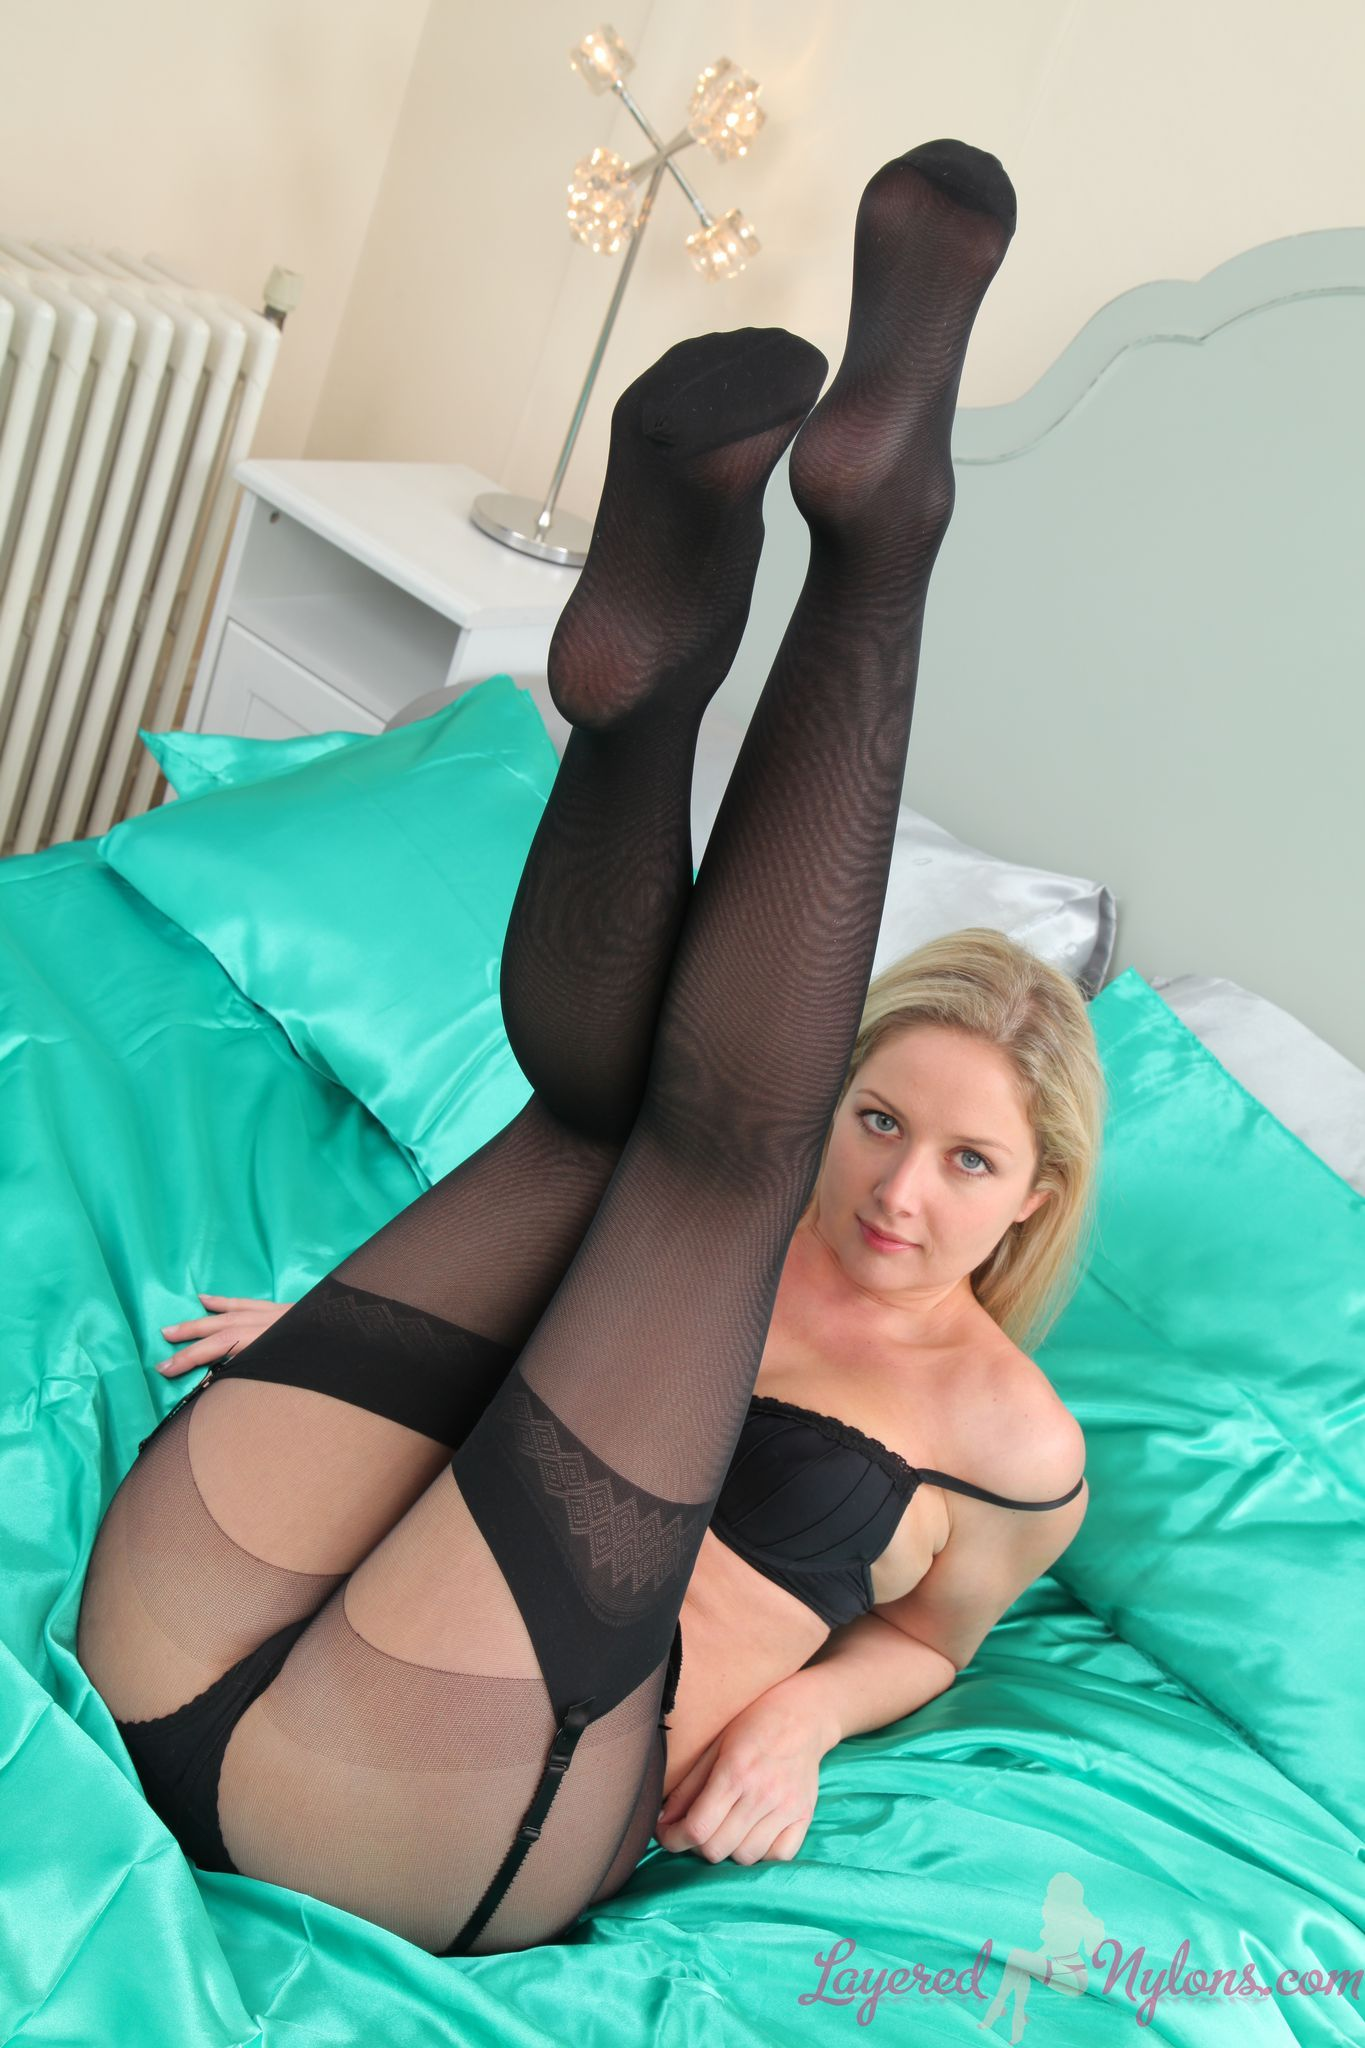 Vintage Stockings Pictures